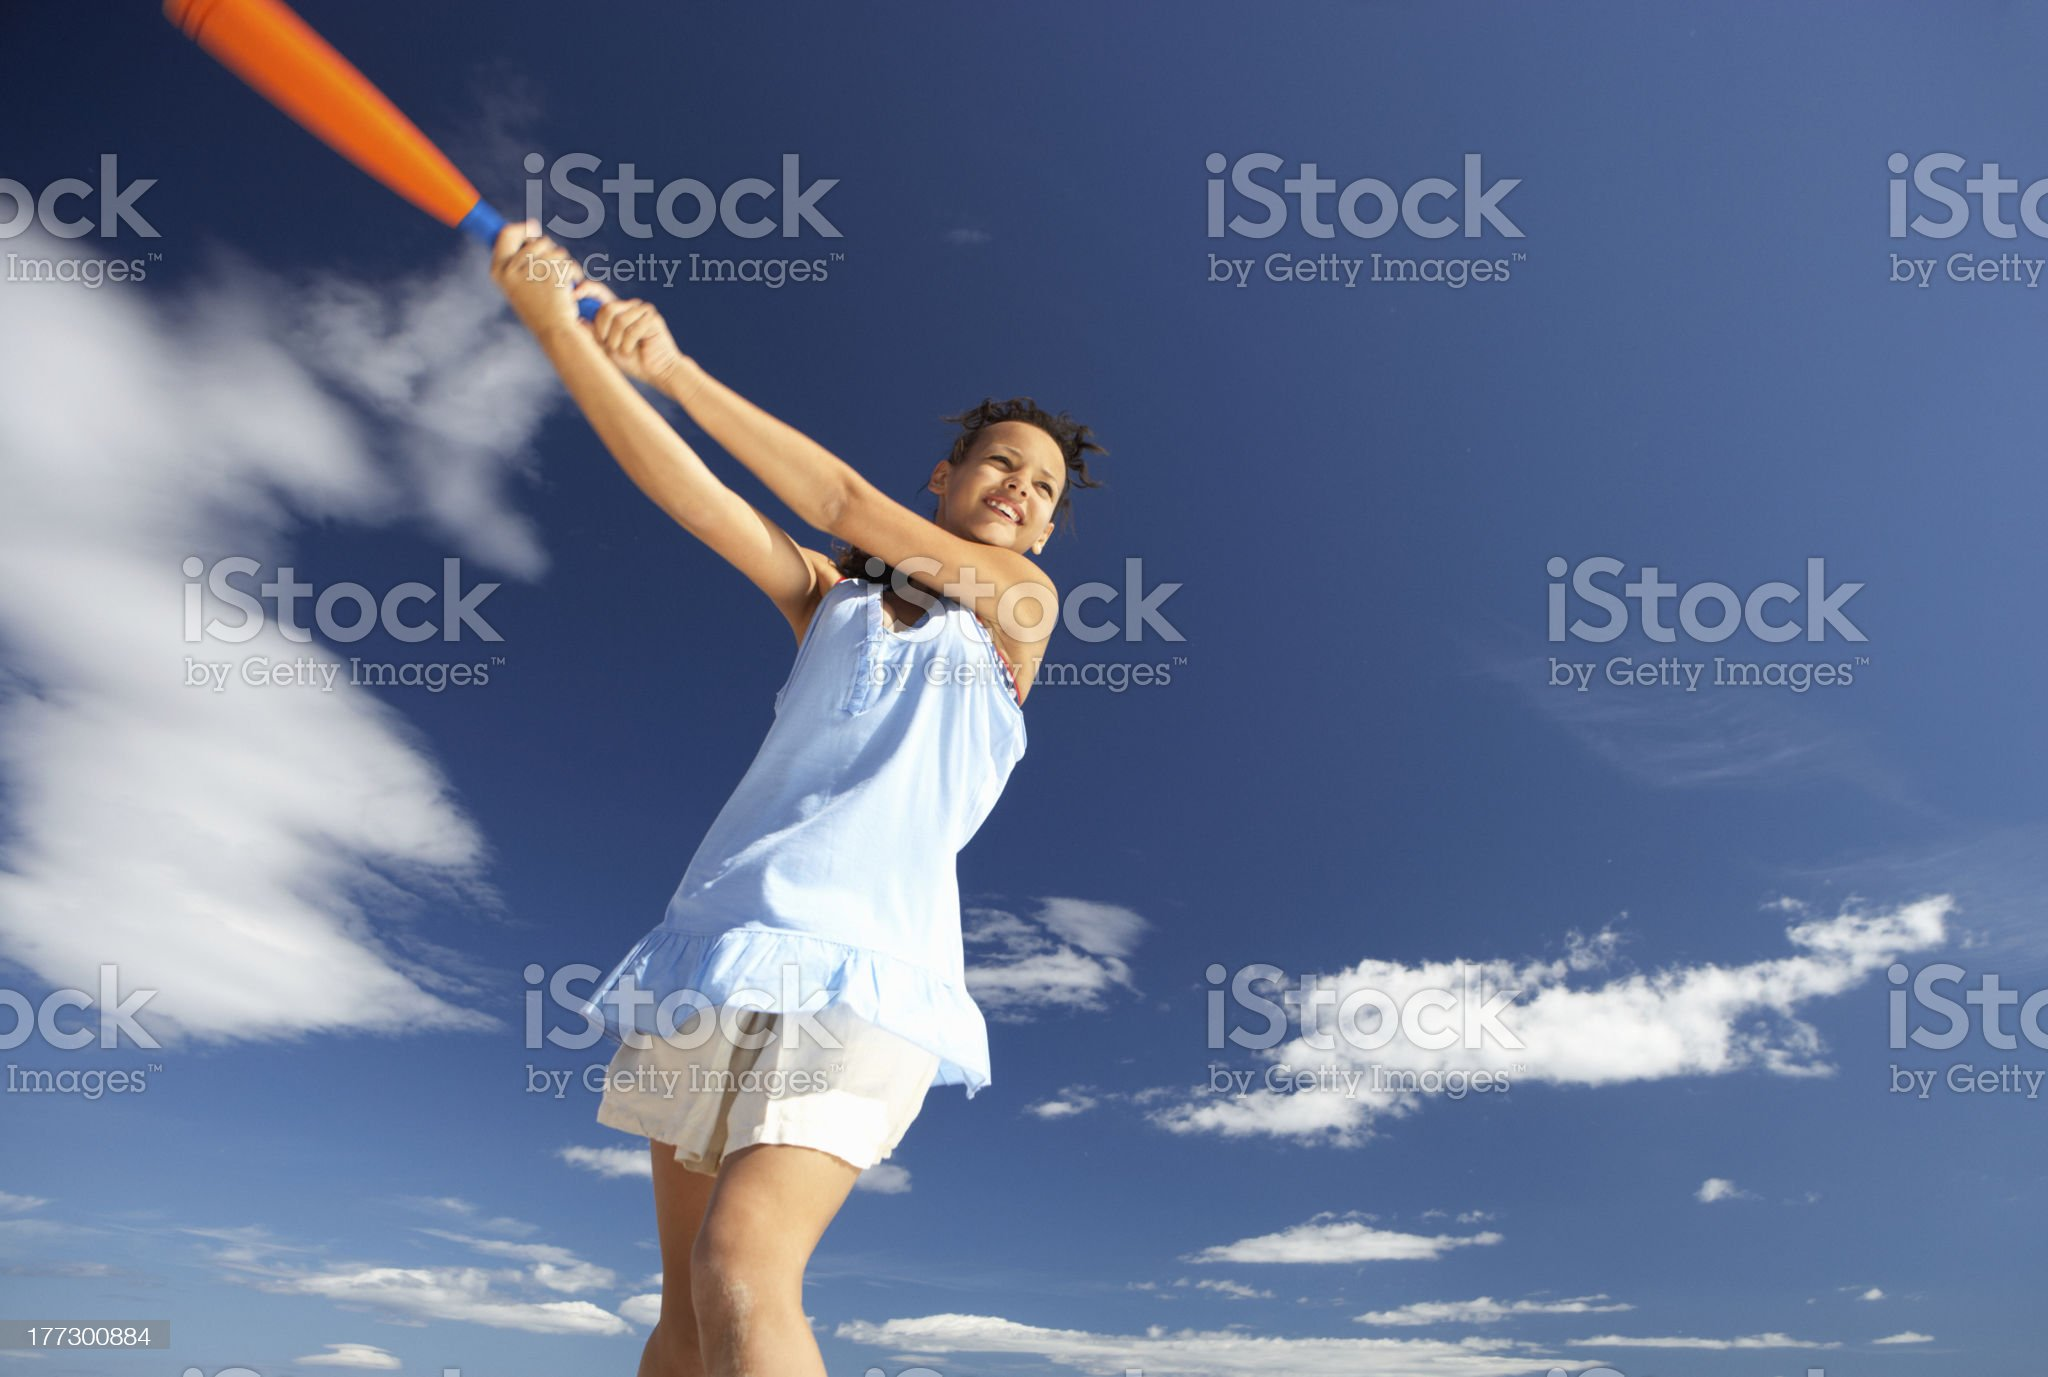 Teenage girl playing baseball on beach royalty-free stock photo